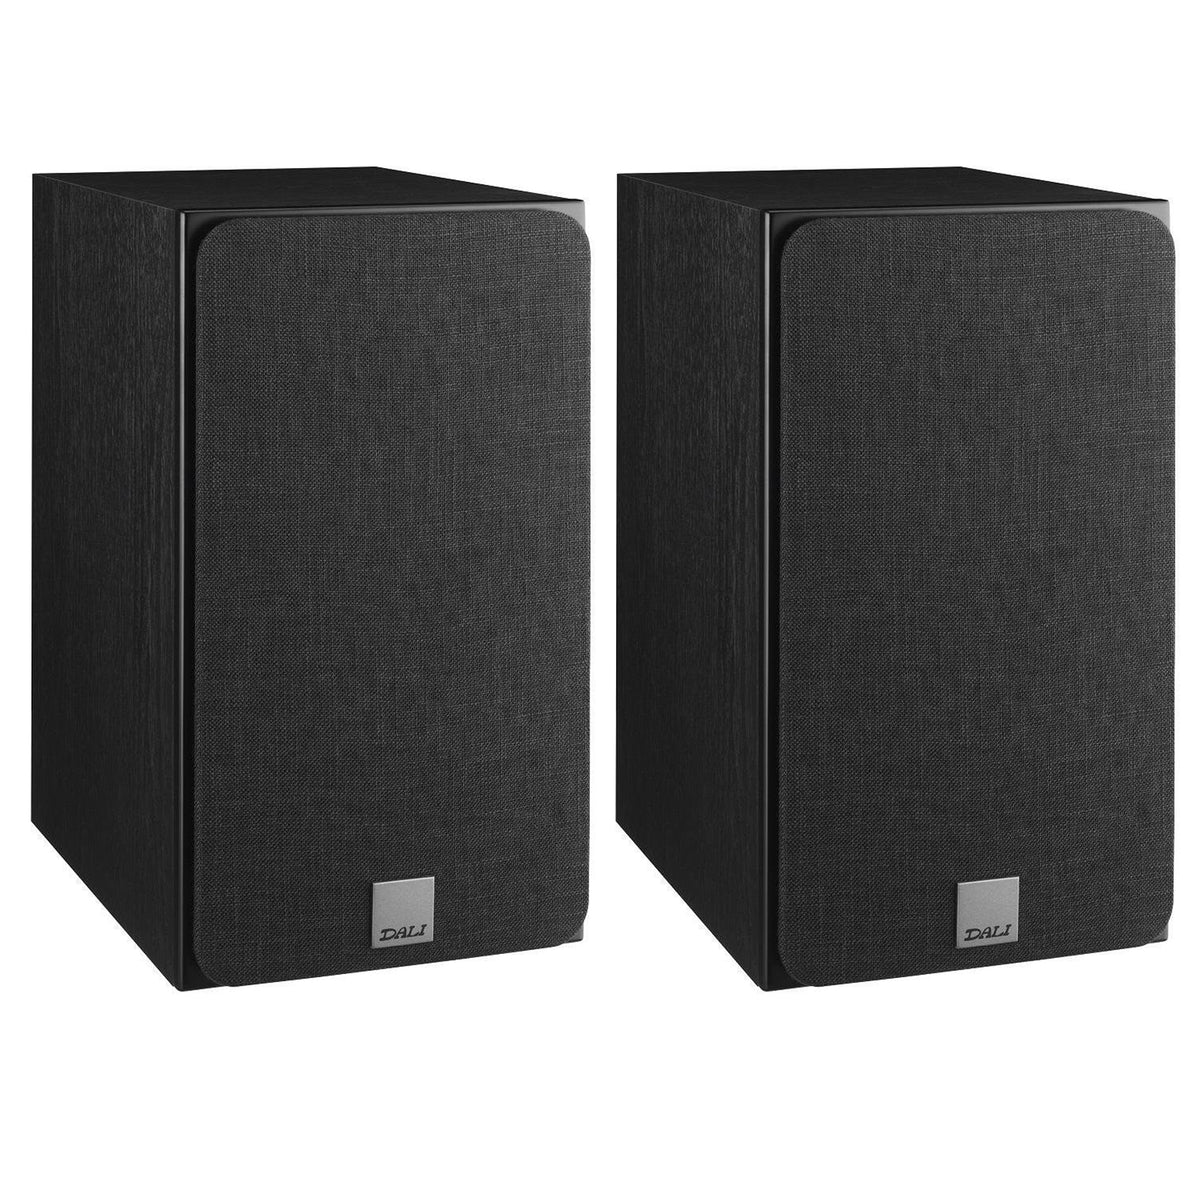 Dali: Oberon 3 Passive Bookshelf Speakers - Black (Pair)